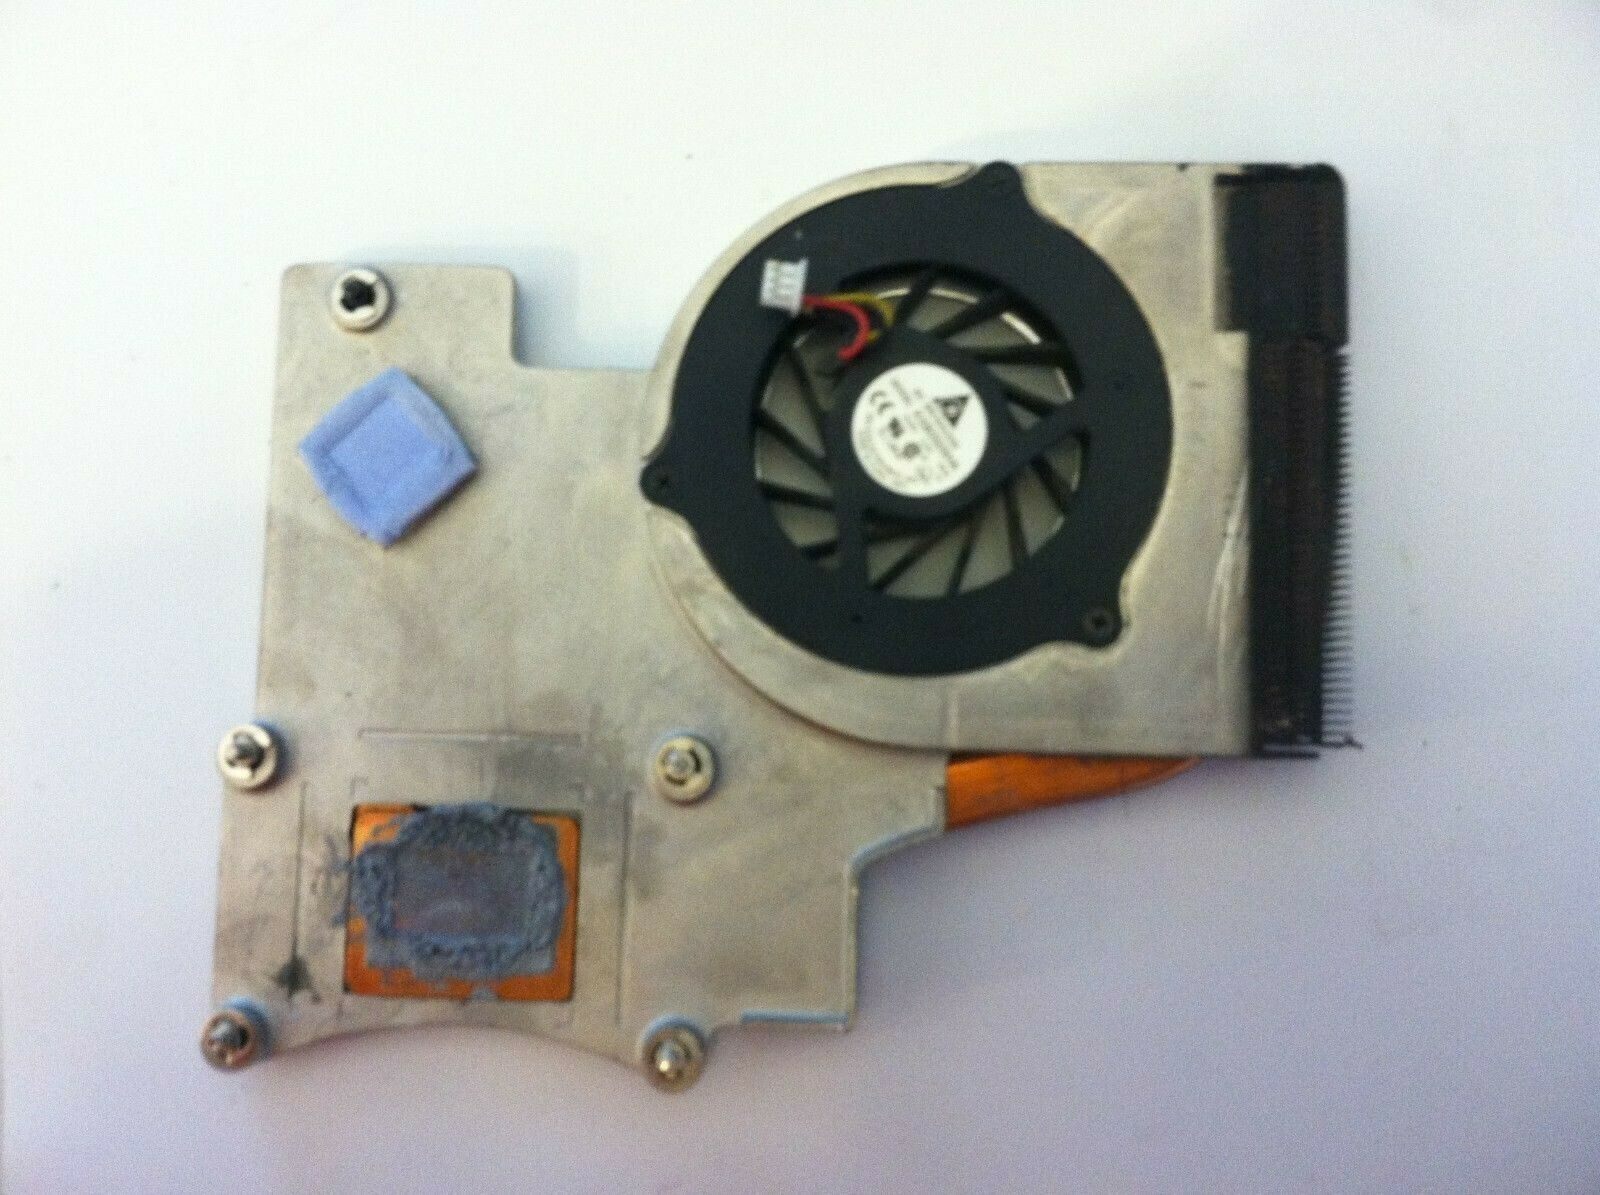 OEM HP PAVILION DV2000 DV2500 HEATSINK FAN LAPTOP 455843-001 60.4S602.001